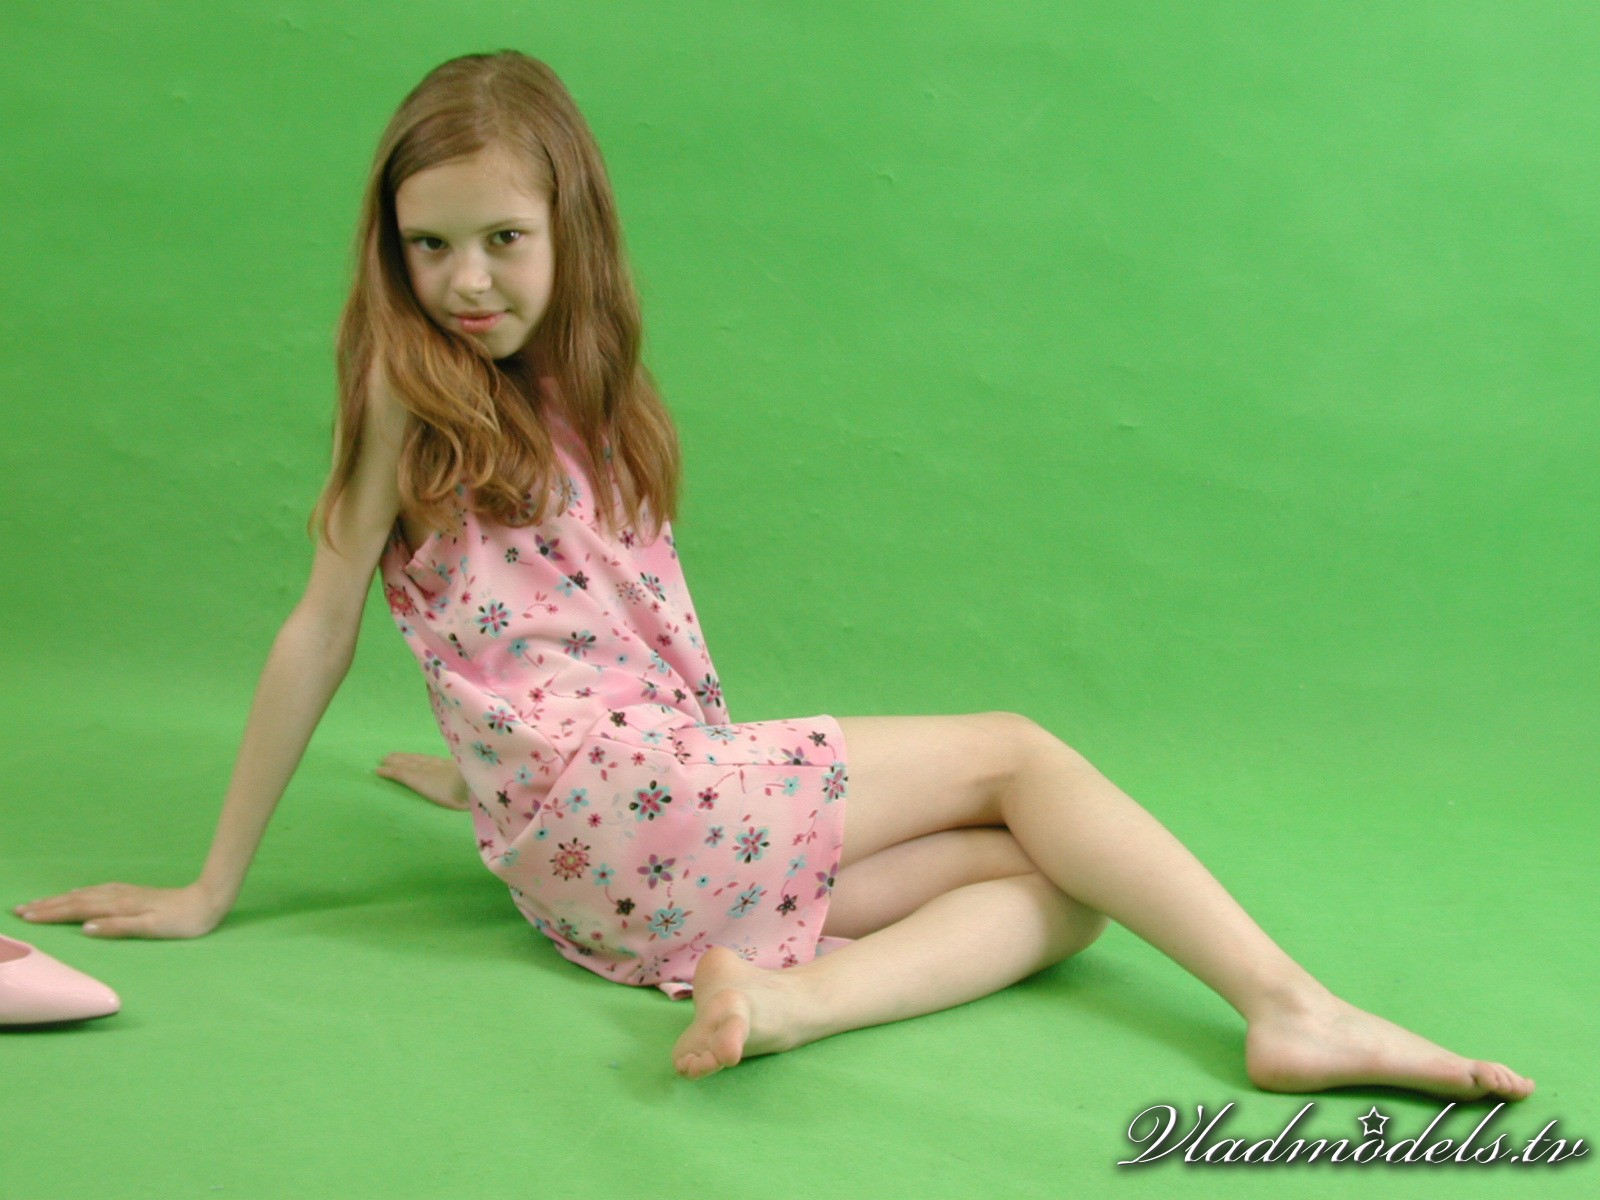 Vladmodels Free Pics And Preteen Models